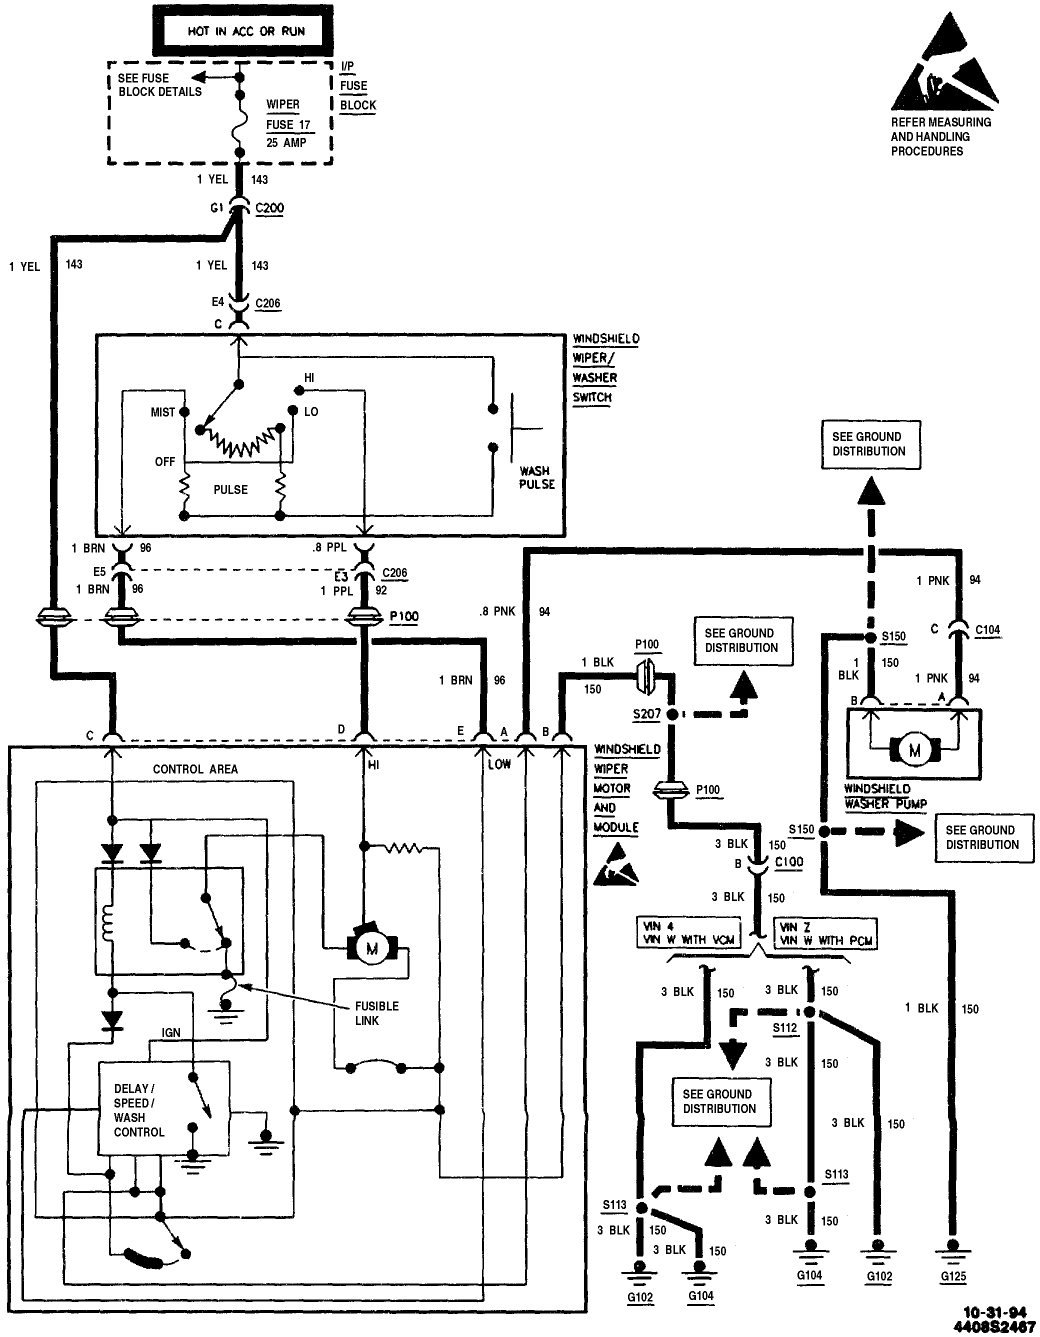 wiper motor wiring diagram cb350 parts i need to know the schematic